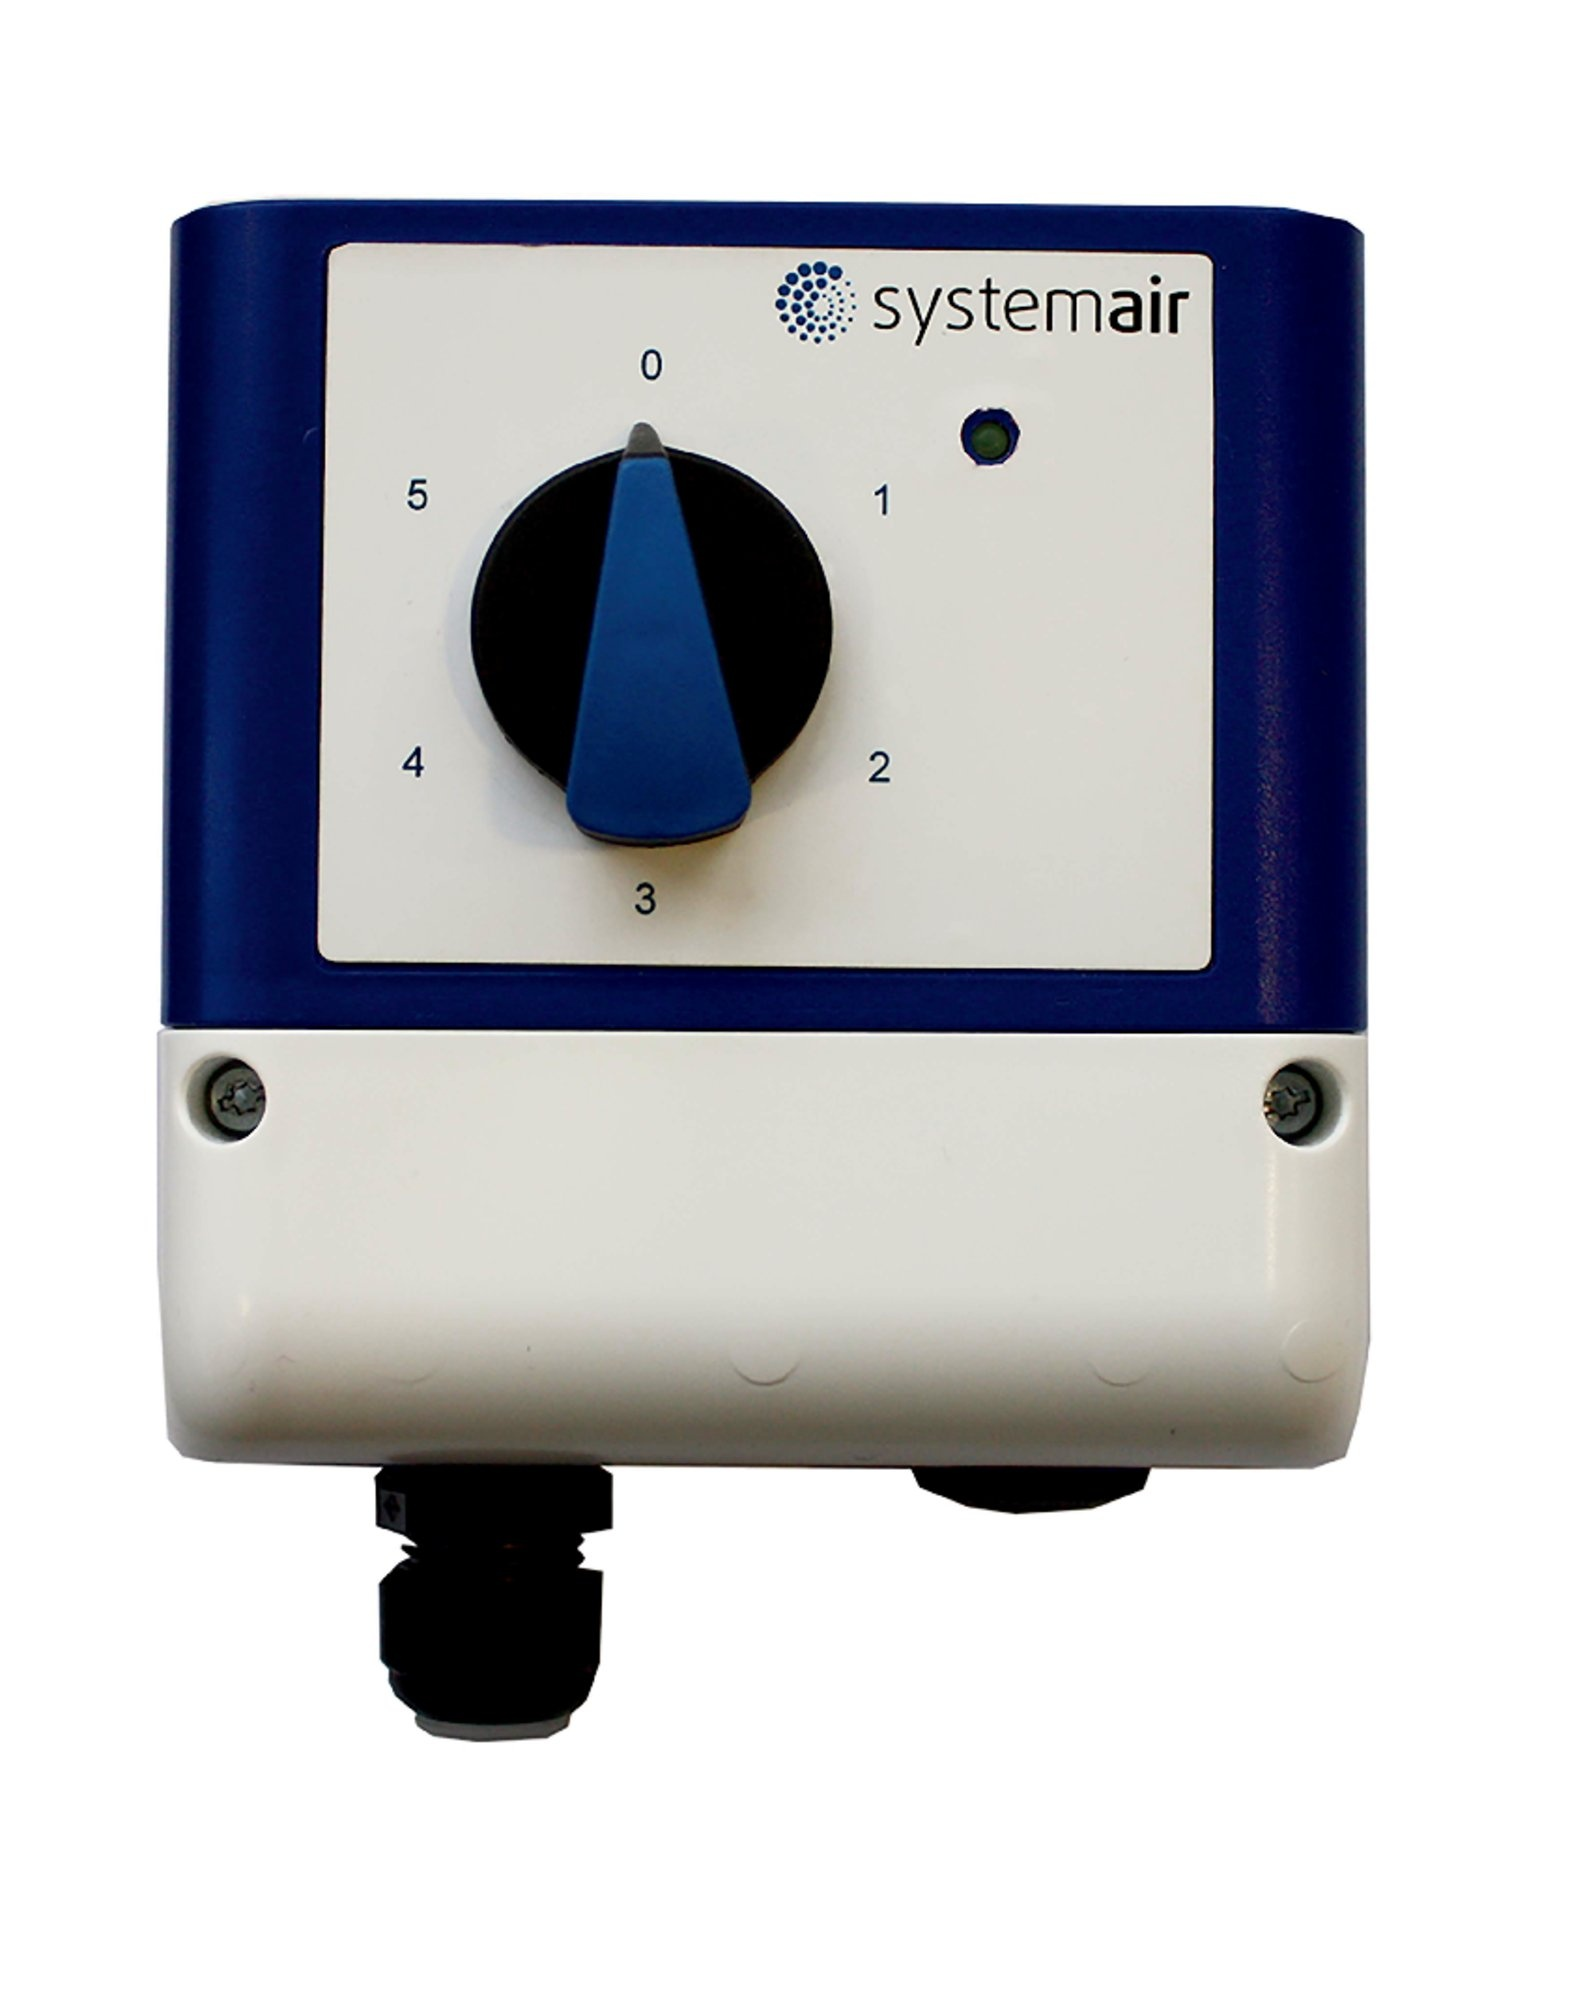 S-5EC/FRQ - Systemair